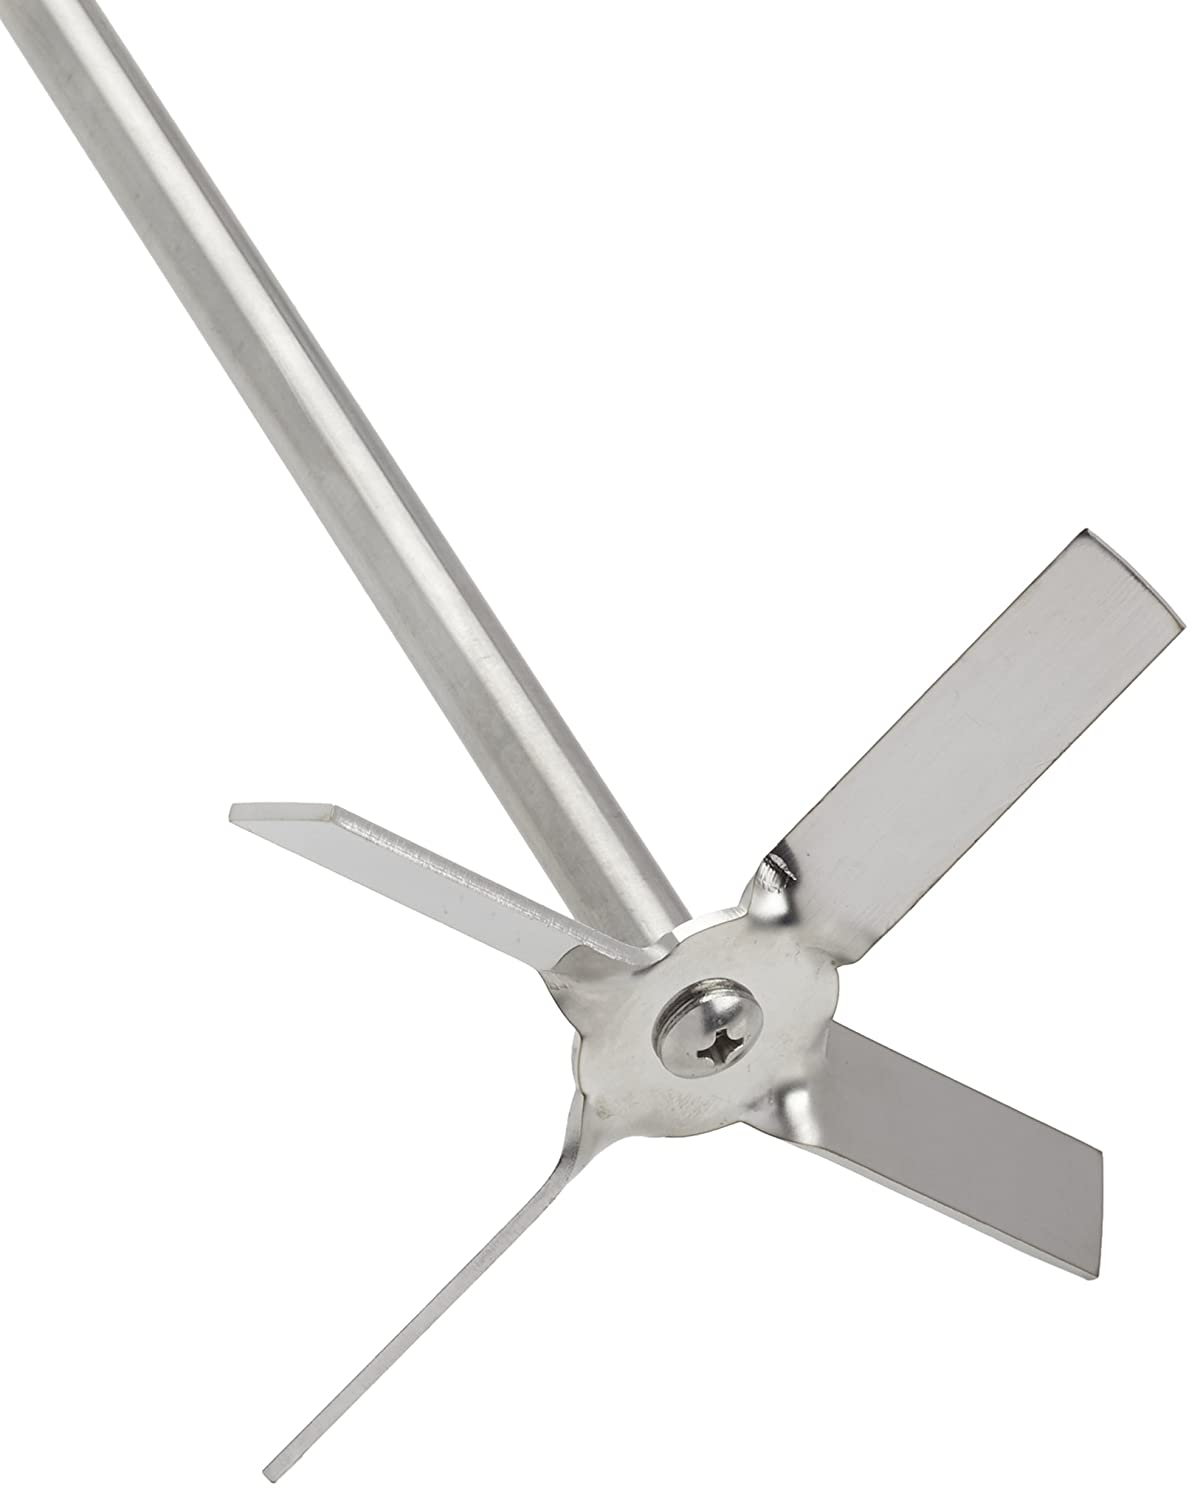 witeg impeller propeller type PL017 4 blades /Ø100mm for HS and HT stirrers rod /Ø8mm